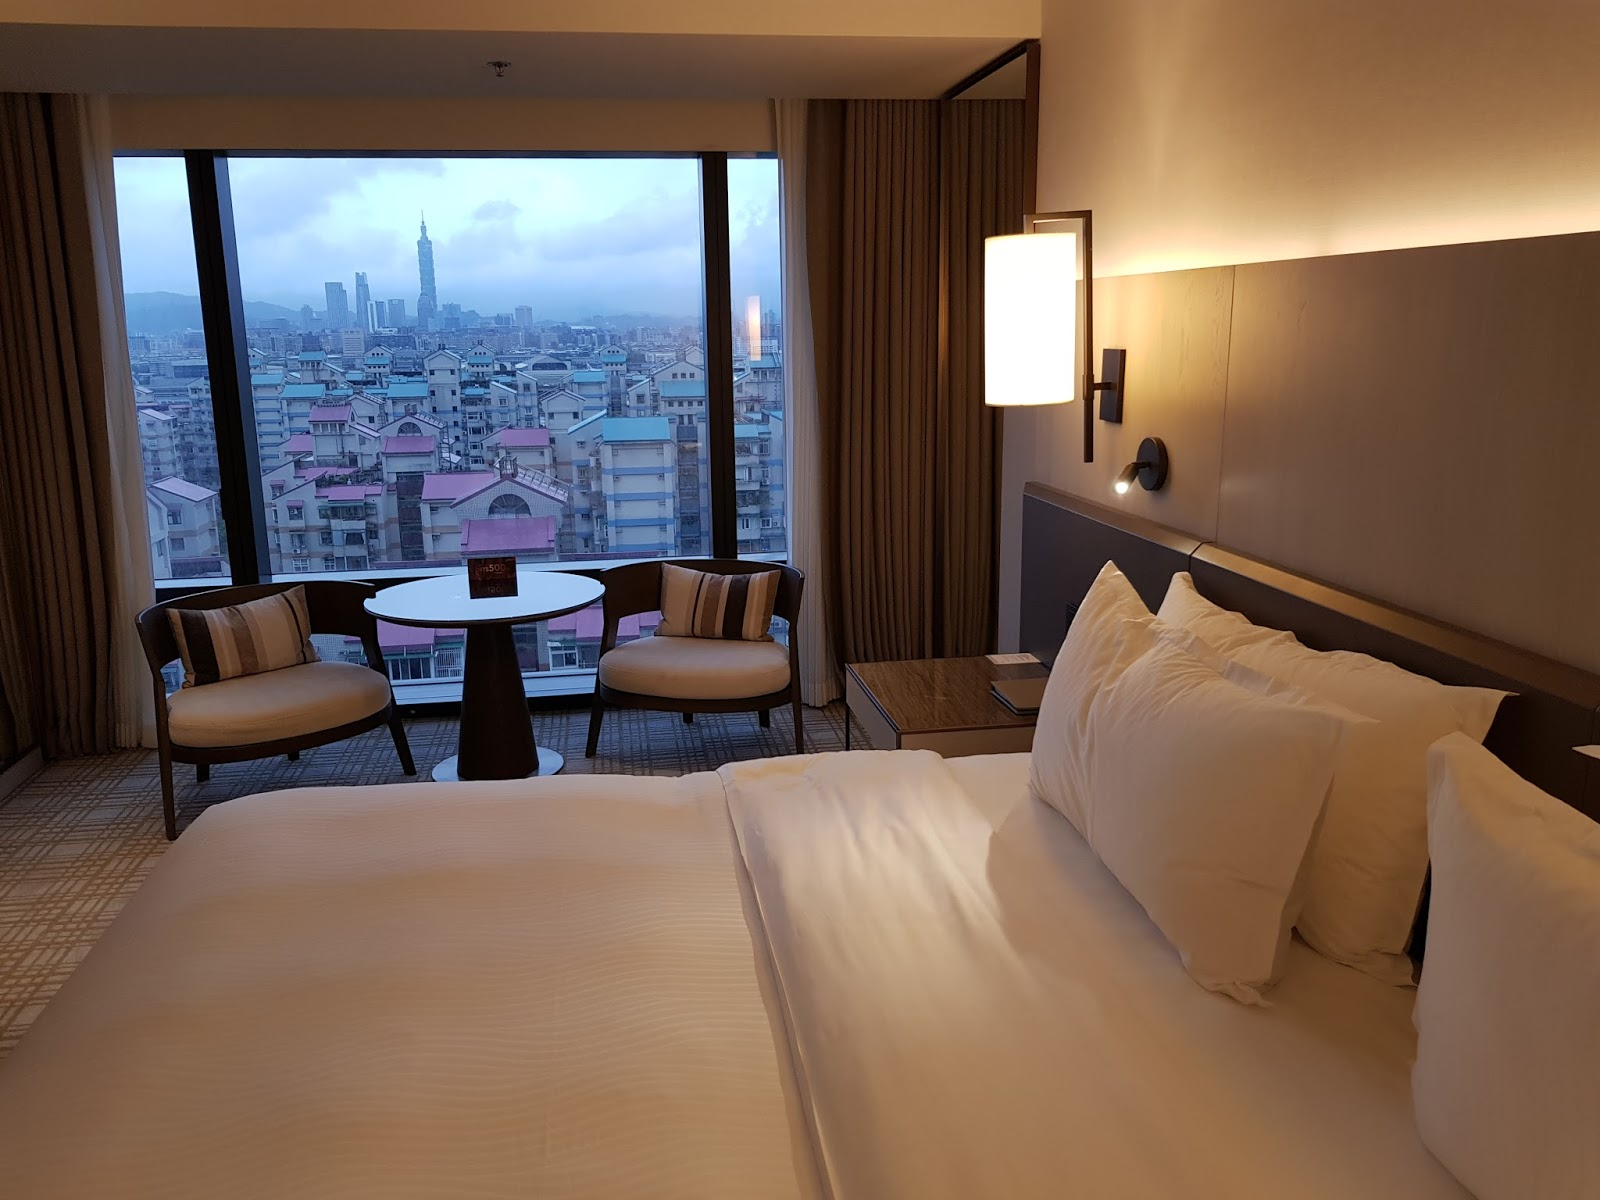 2nd Stay: Taipei Marriott Hotel 台北萬豪酒店